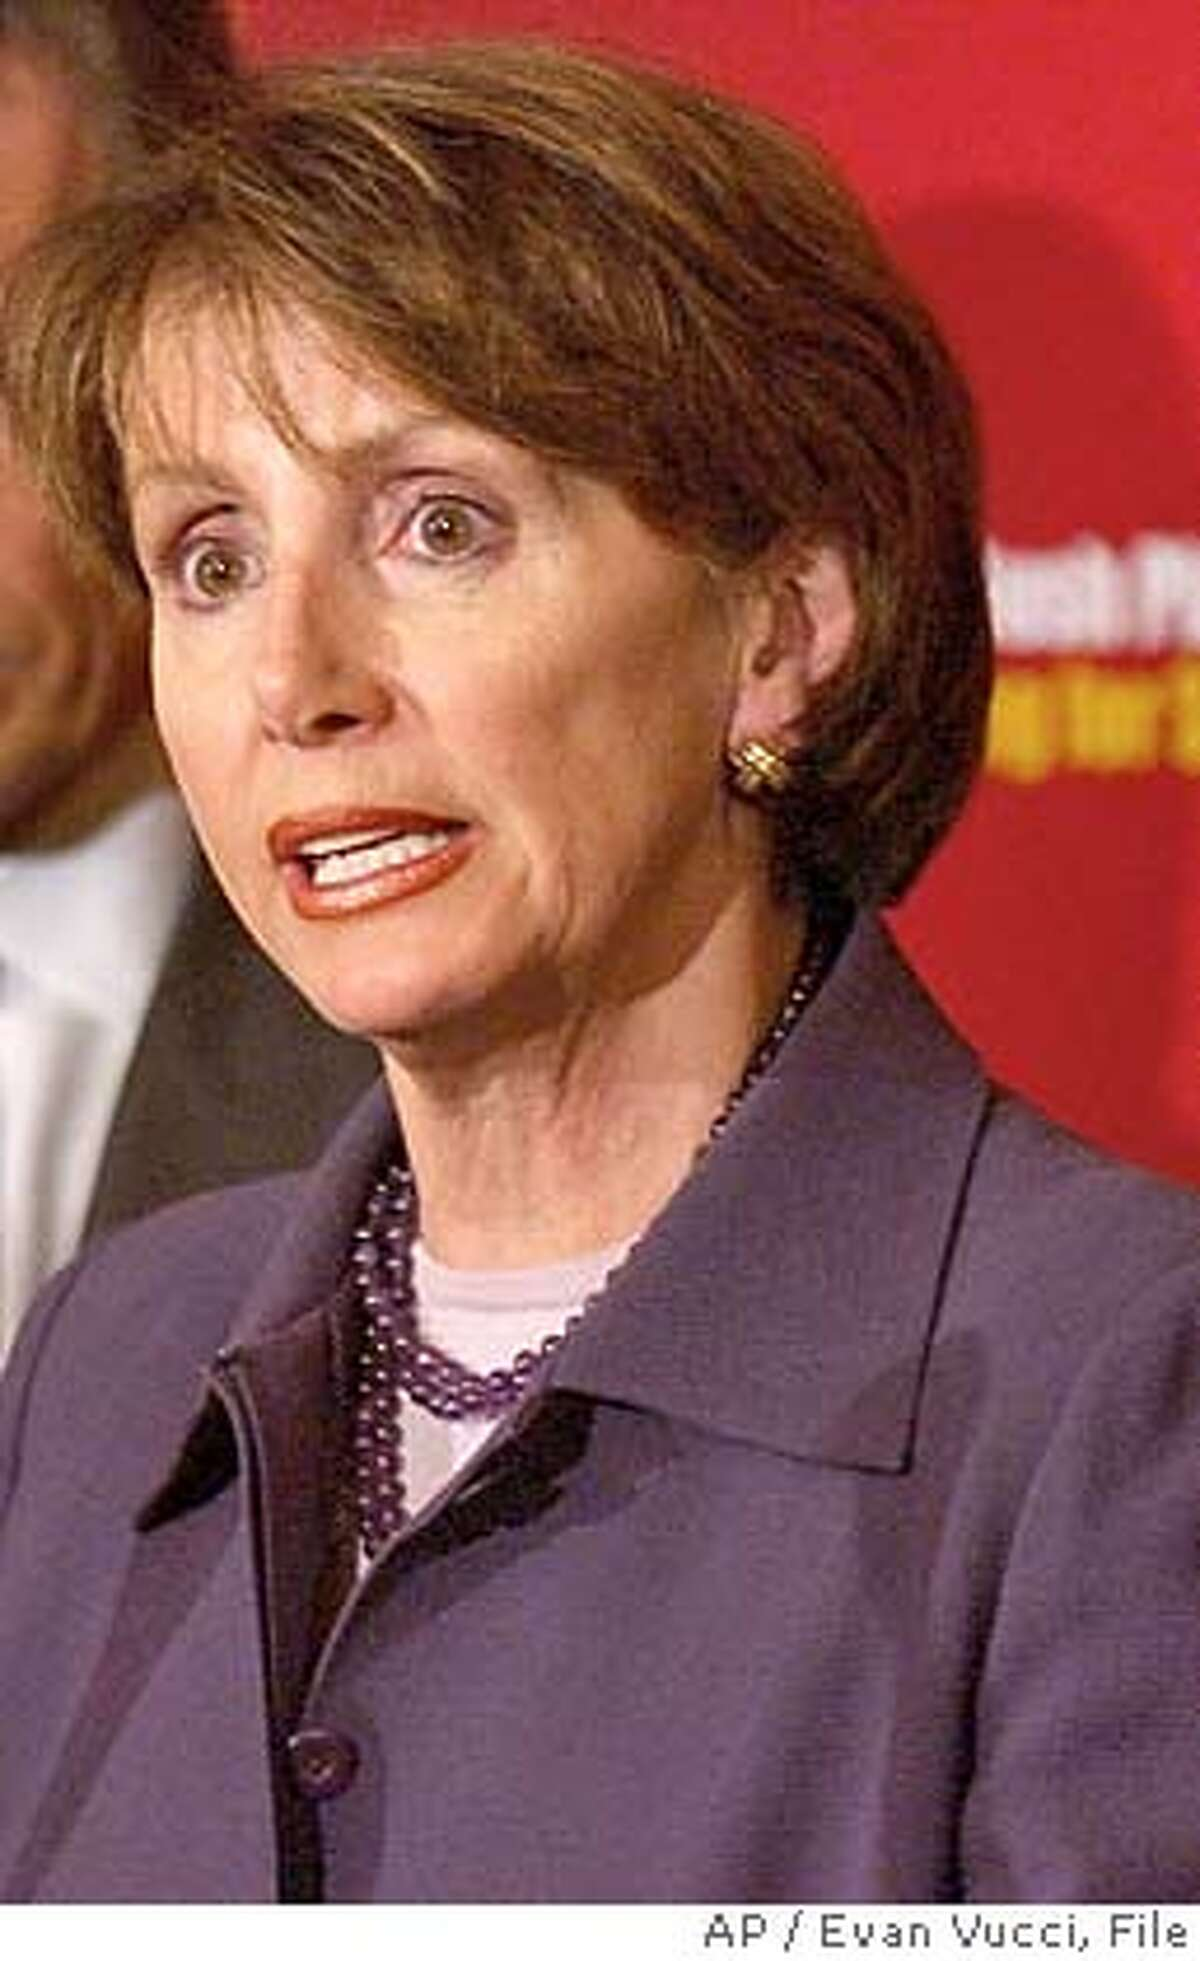 **FILE** House Minority Leader Nancy Pelosi, D-Calif., shown in this Feb. 27, 2003, file photo, is among the Democrats' wealthiest members, according to financial disclosure forms released Monday, June 16, 2003. She joins another newcomer to the leadership, Senate Majority Leader Bill Frist, R-Tenn., in the Capitol Hill multimillionaire club. Senators released their disclosure forms on Friday, June 13, 2003. (AP Photo/Evan Vucci, File) House Minority Leader Nancy Pelosi stands by her comments. House Minority Leader Nancy Pelosi stands by her comments. CAT